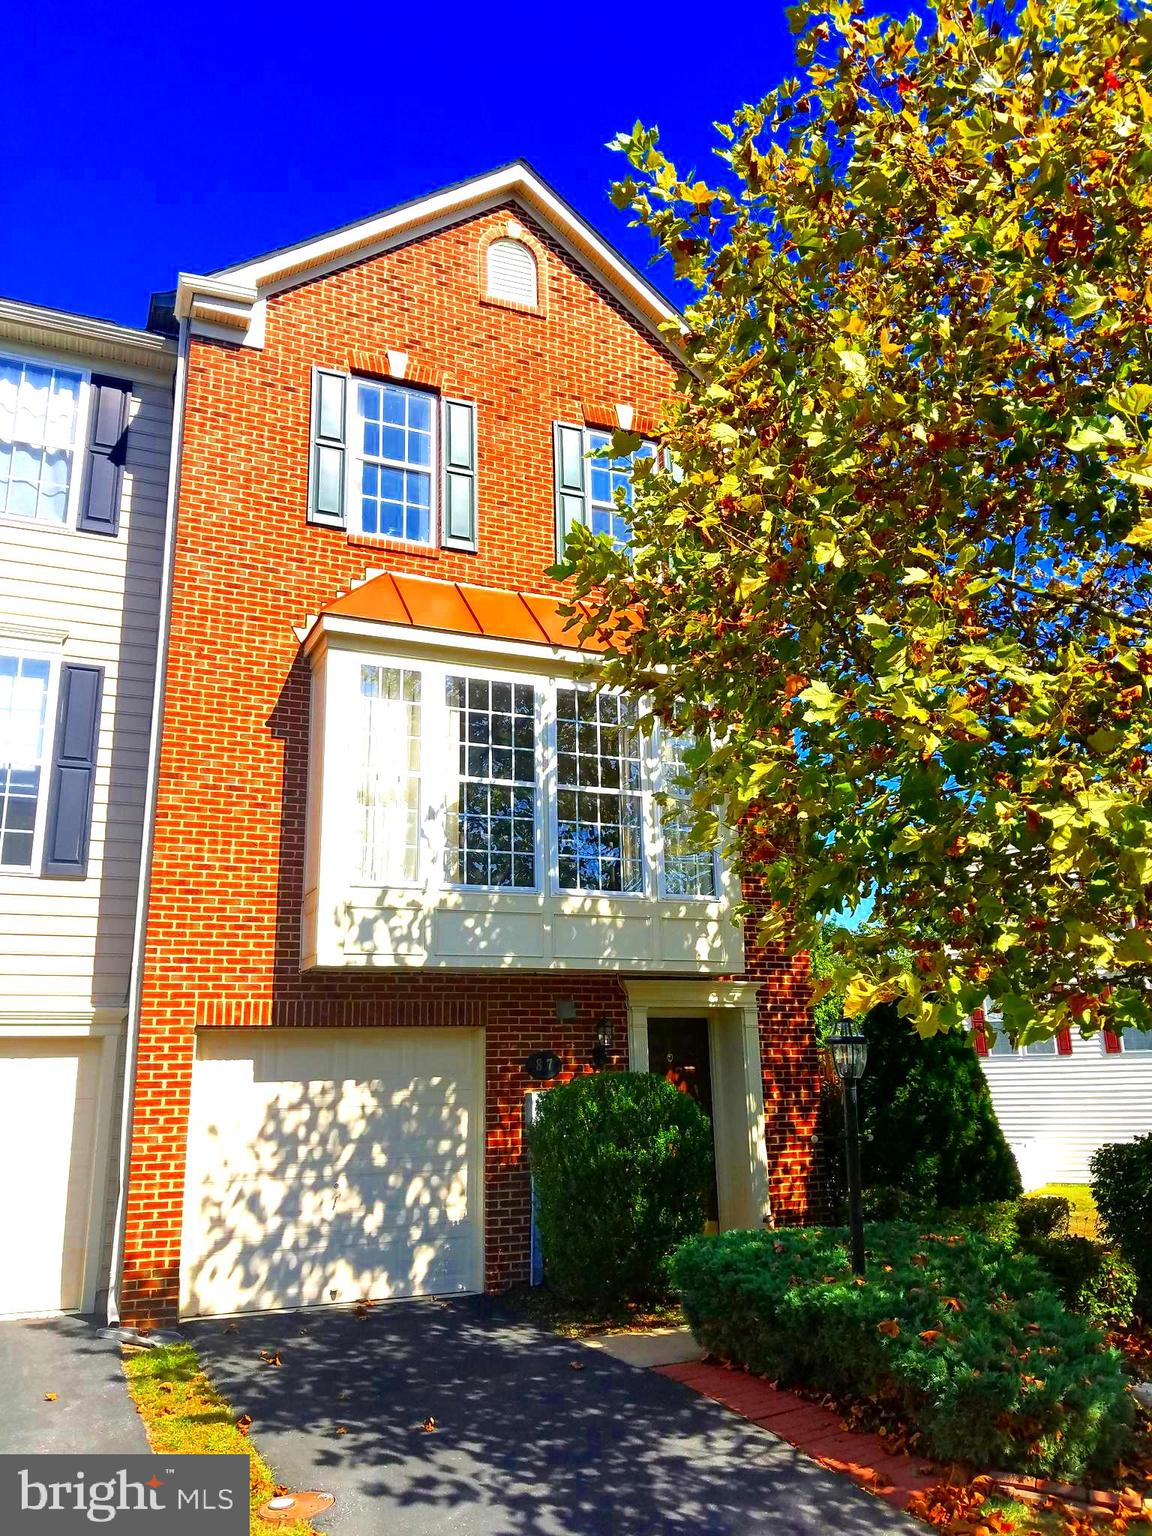 IS THIS THE NICEST TOWNHOME IN ALL OF BERKELEY COUNTY? SCHEDULE A TOUR AND SEE FOR YOURSELF! This is